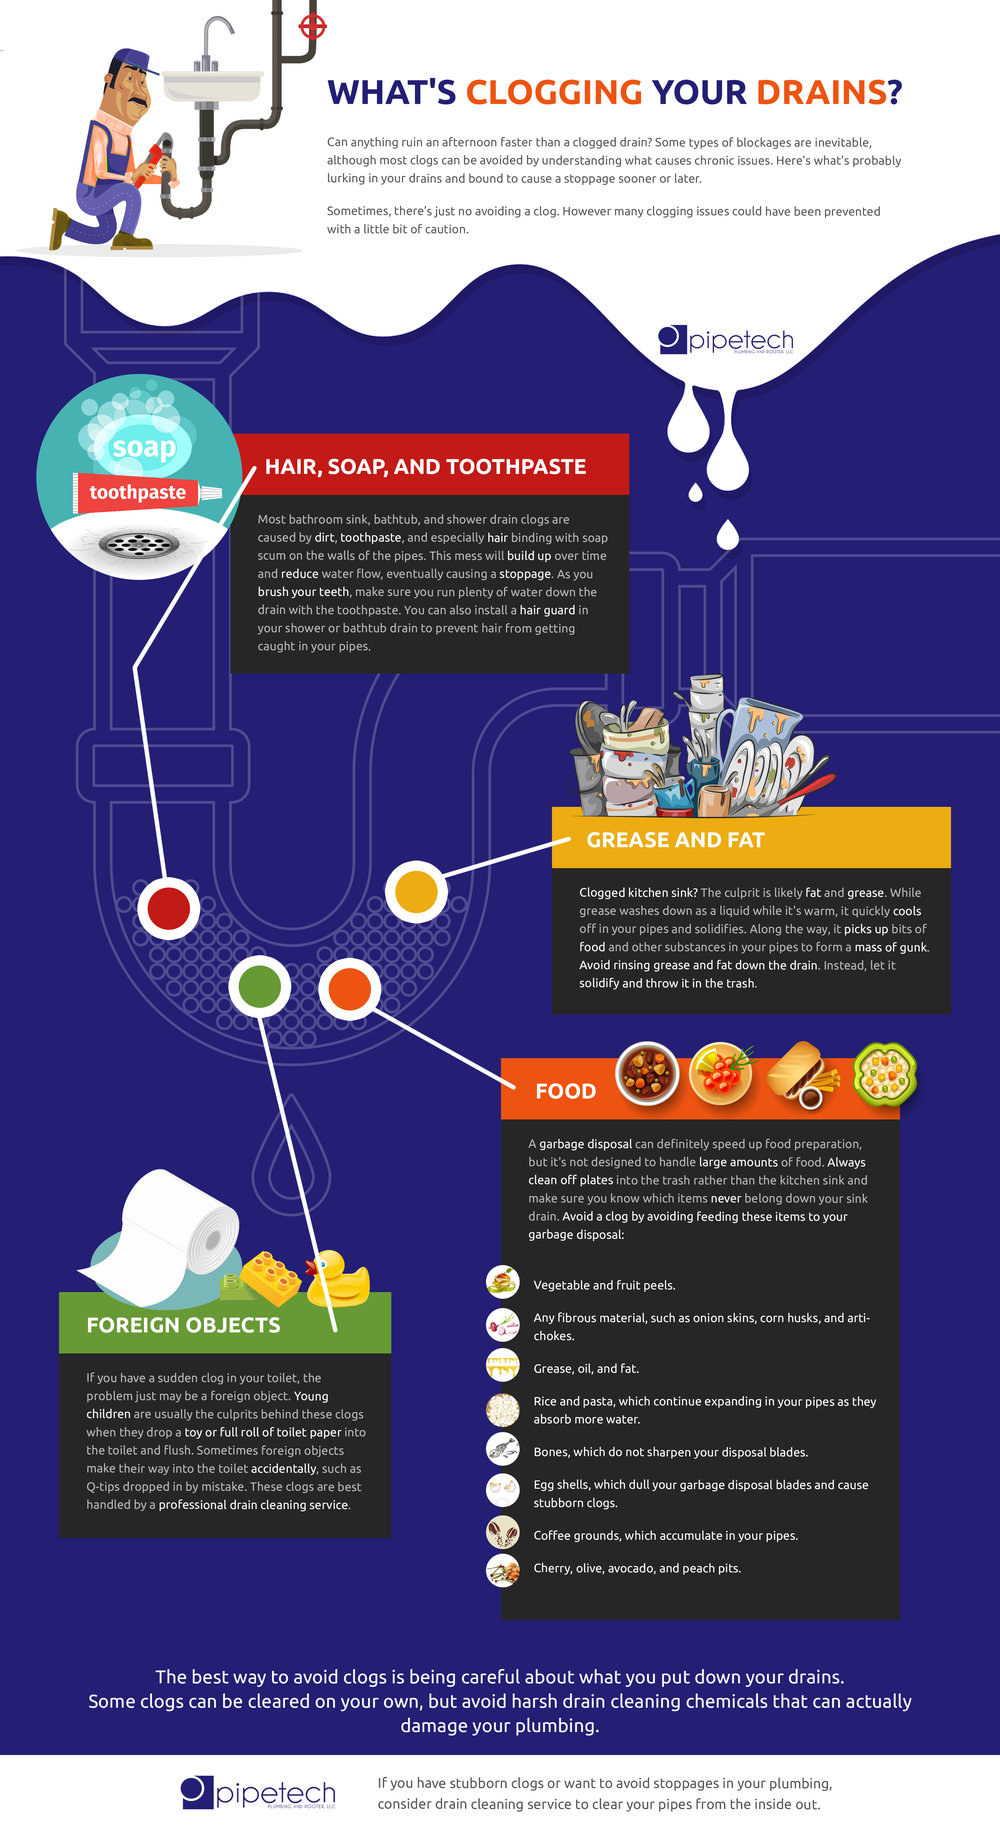 Whats-Clogging-Your-Drains-Infographic.jpg